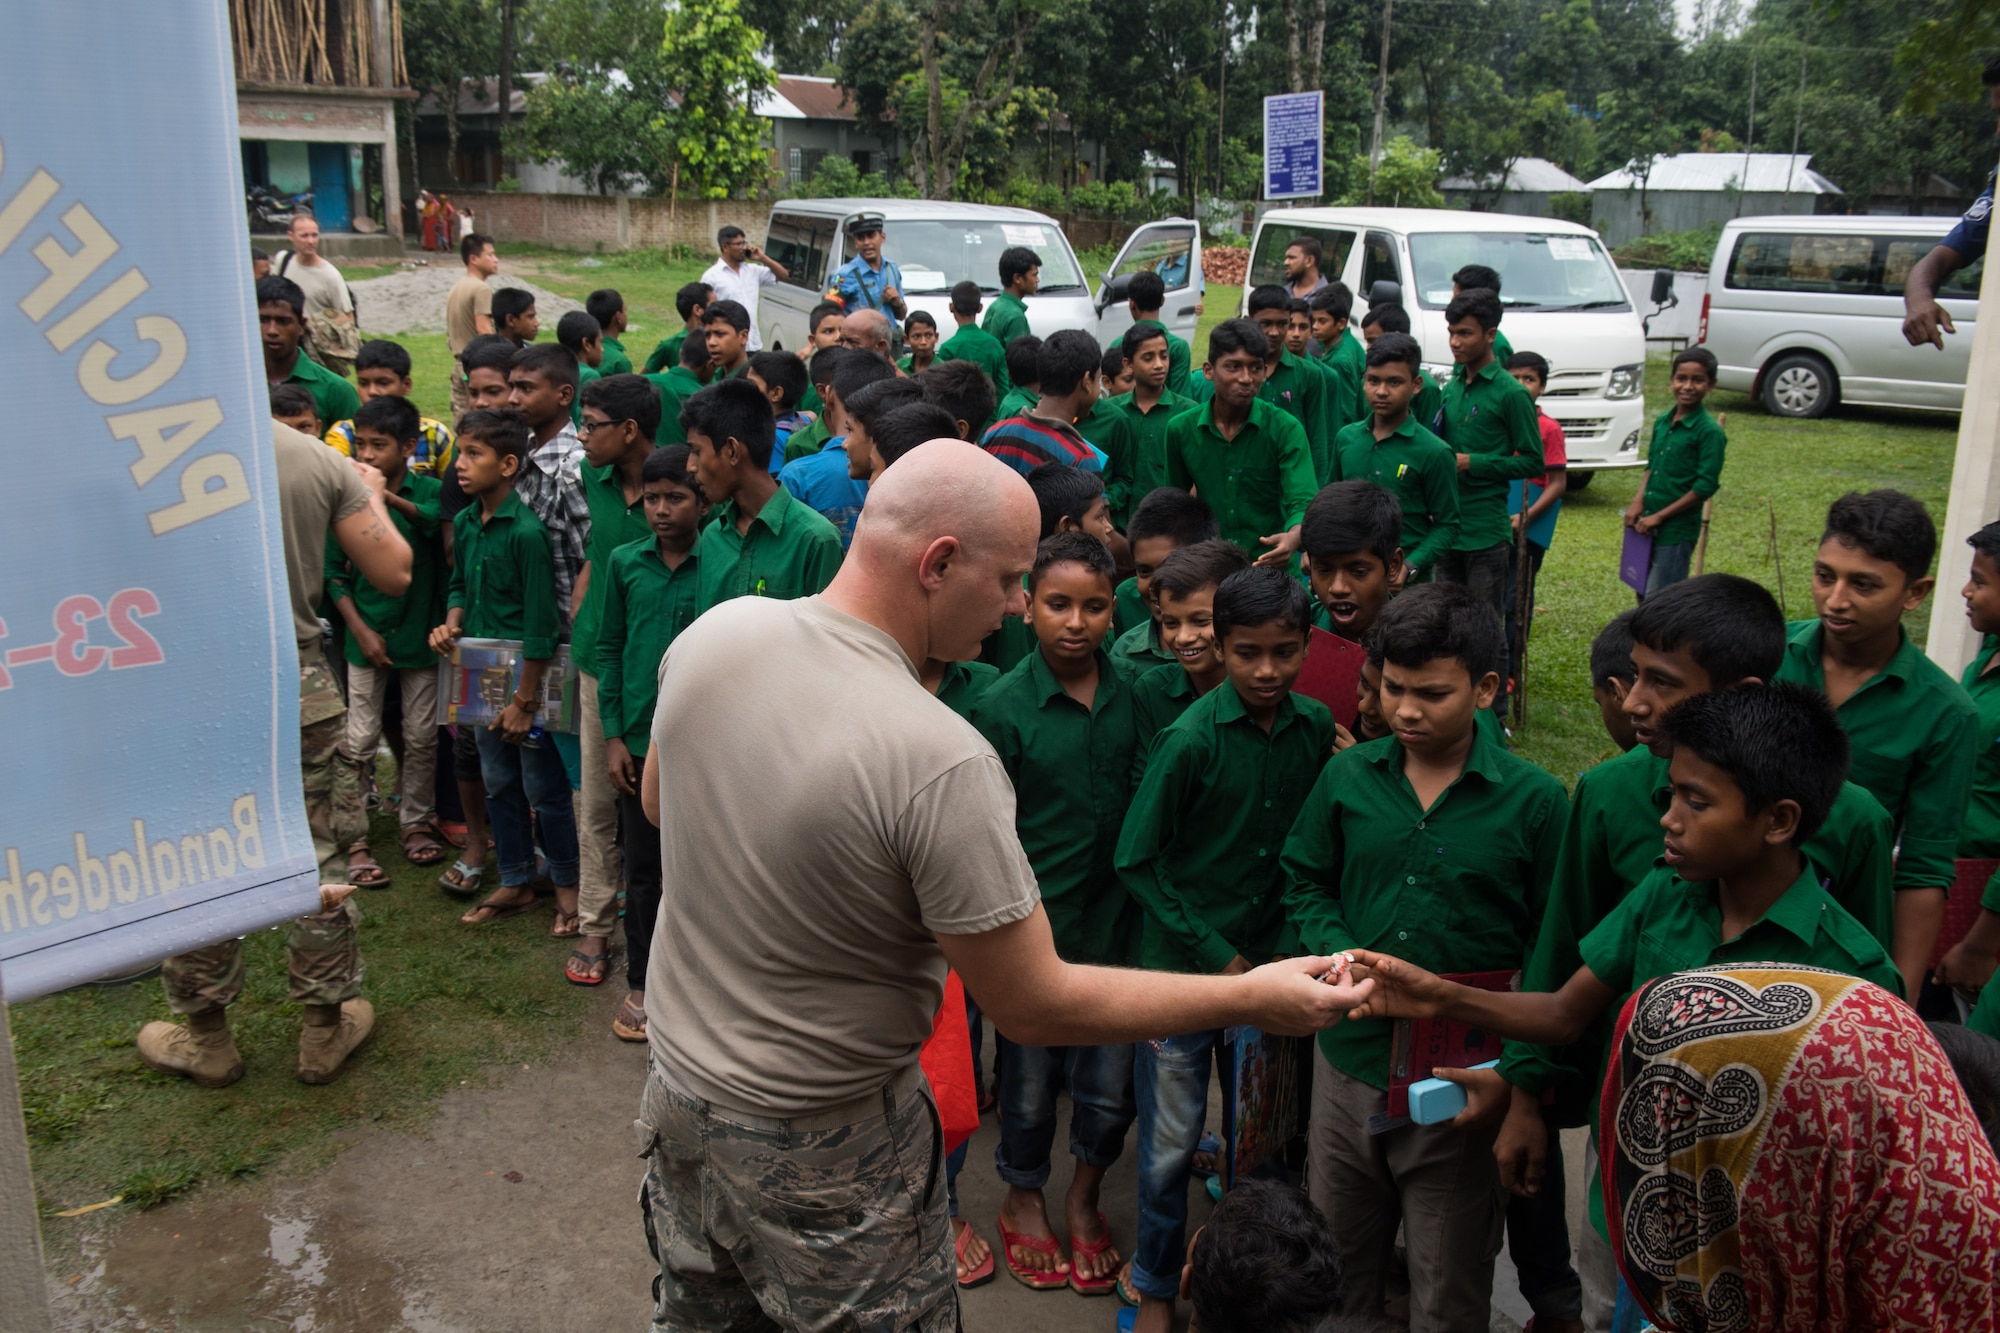 U.S. Air Force Staff Sgt. Danny Mclain, 18th Civil Engineer Squadron structural craftsman, Kadena Air Base, Japan, hands out candy to students during Pacific Angel 19-1 in Lalmonirhat, Bangladesh, June 25, 2019. These humanitarian assistance exercises build relationships between Bangladesh, the United States, and other regional nations, promoting military-civilian-nongovernmental organization cooperation. (U.S. Air Force photo by Staff Sgt. Ramon A. Adelan)